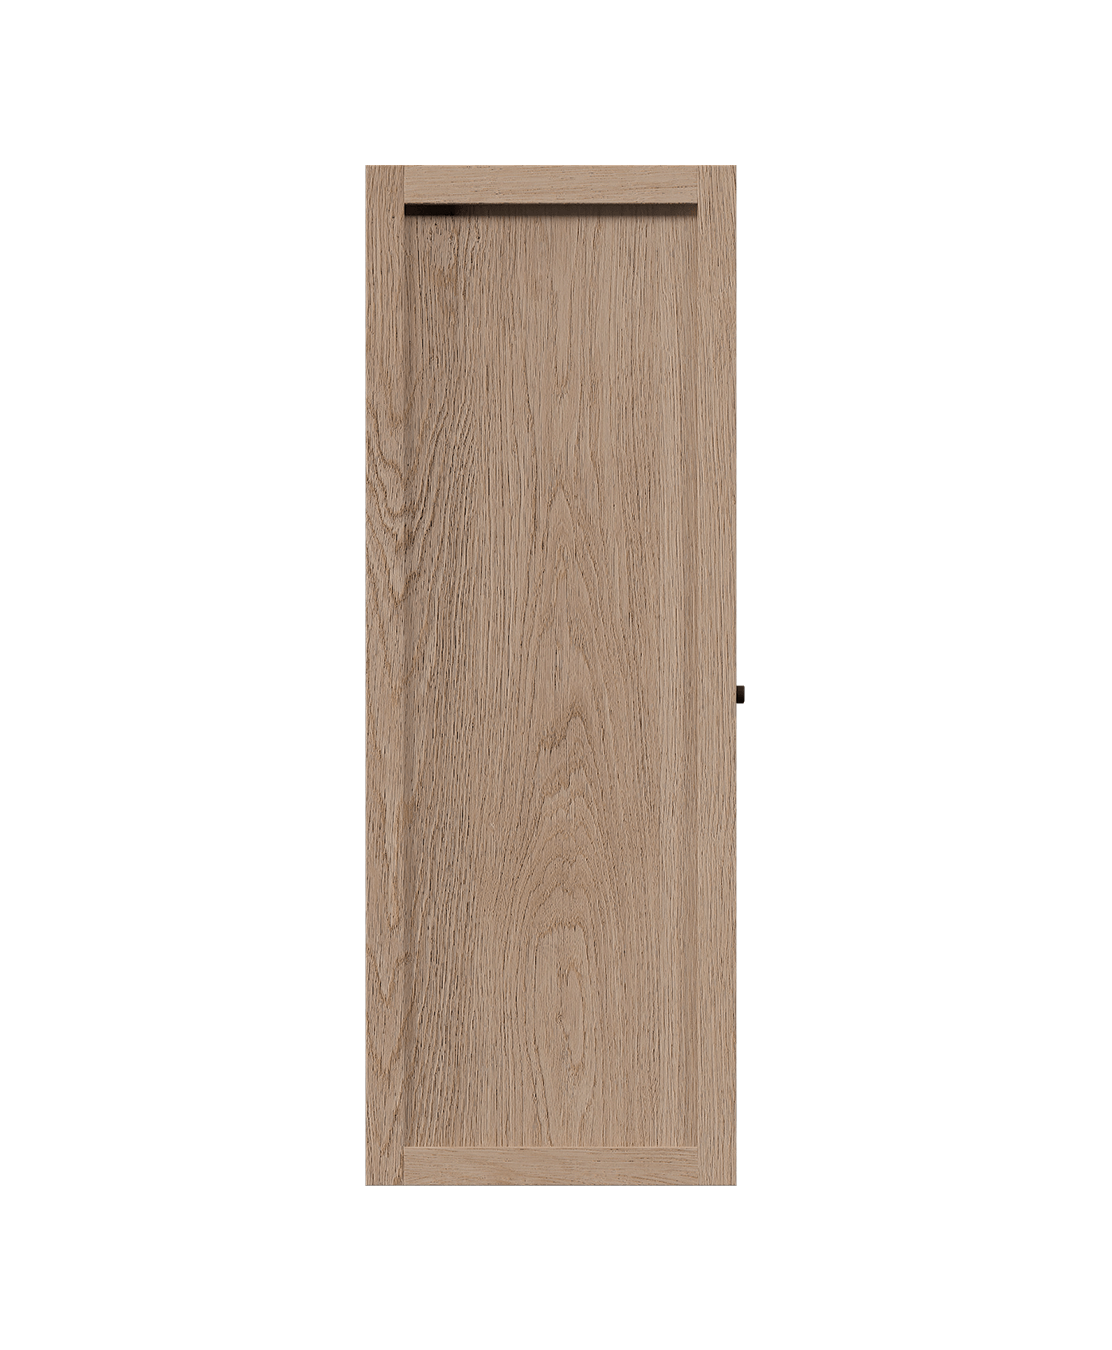 coquo radix white oak solid wood modular 2 glass doors wall upper kitchen cabinet 12 inch C1-W-2412-0201-NA